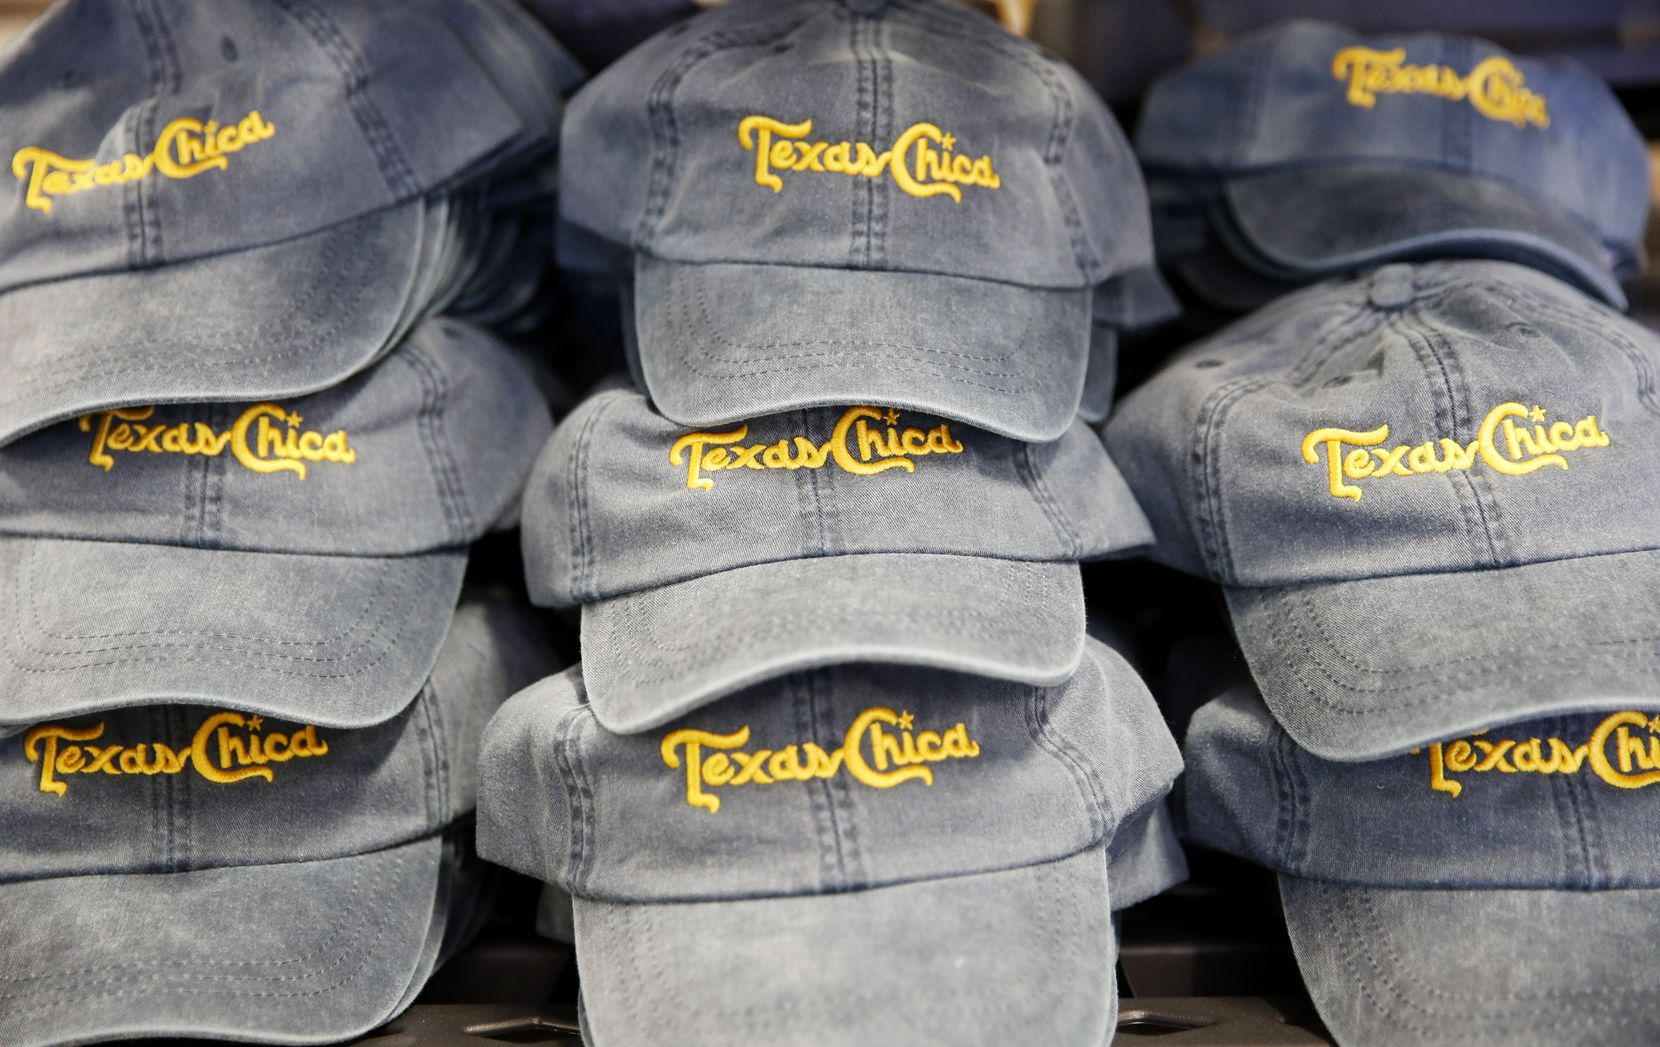 Celebrity Culture: Tumbleweed TexStyles' Texas Chica collection is among its most popular sellers.